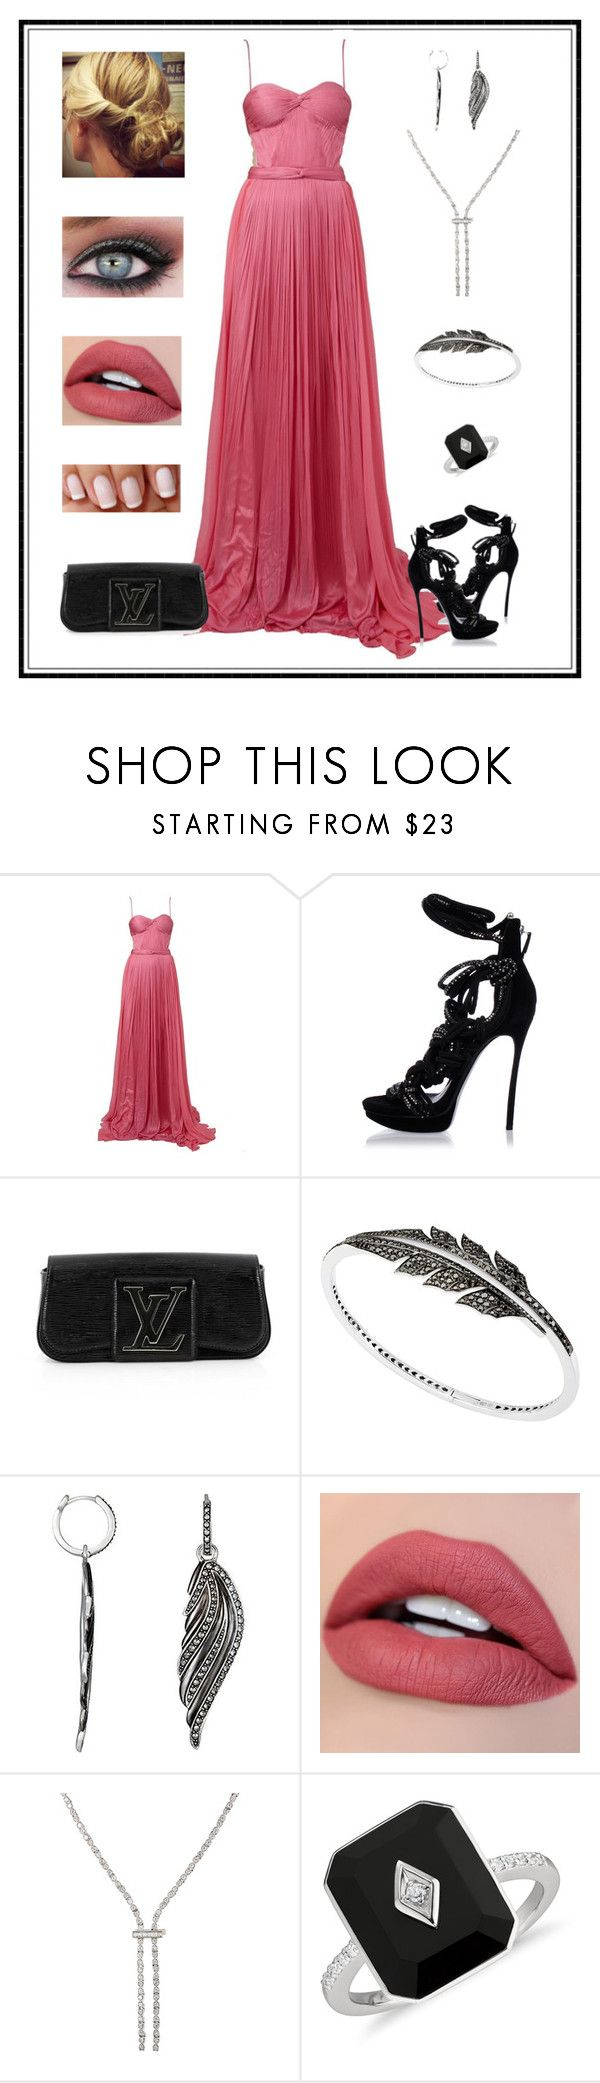 """""""Untitled # 740"""" by binasa87 ❤ liked on Polyvore featuring Maria Lucia Hohan, Dsquared2, Louis Vuitton, Stephen Webster, Black Swan and Deborah Pagani"""